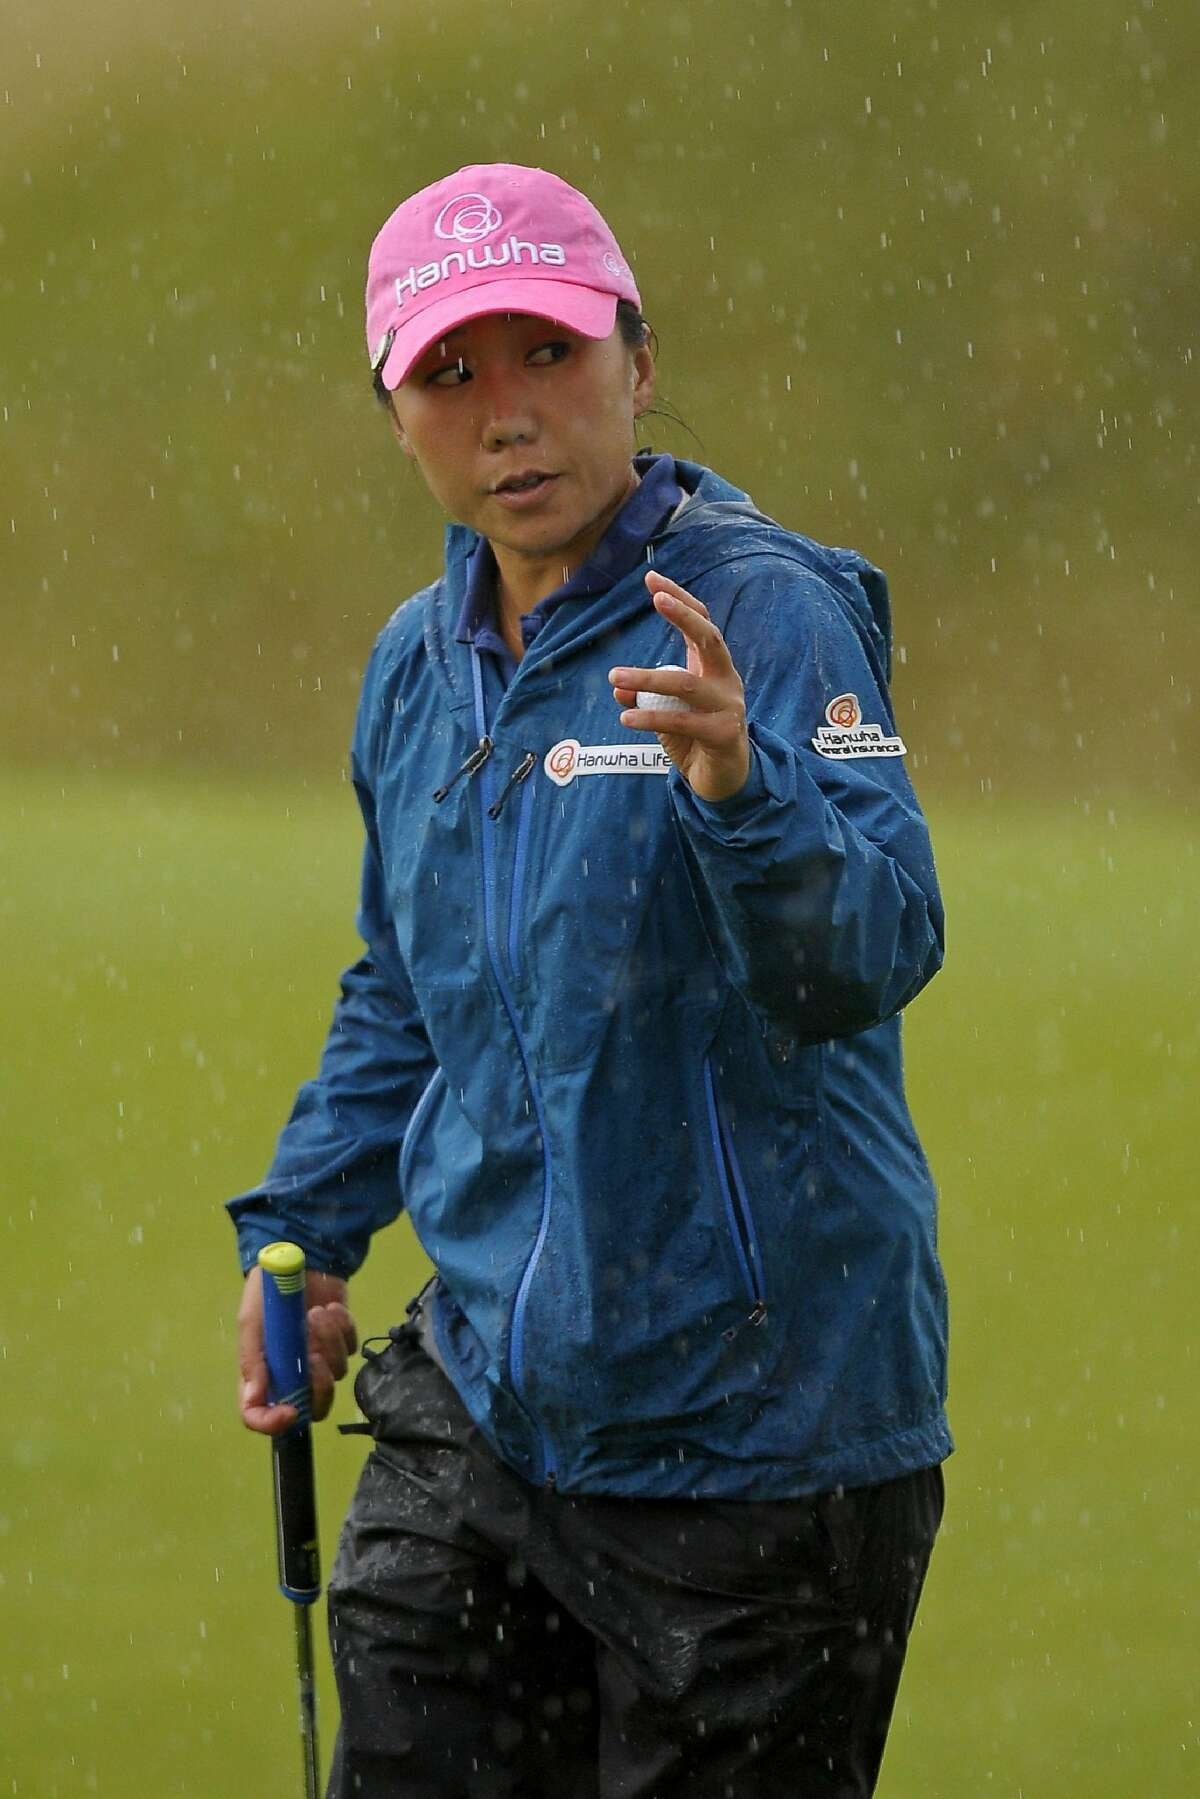 Korea's In-Kyung Kim reacts after finishing her second round on day 2 of the 2017 Women's British Open Golf Championship at Kingsbarns Golf Links near St. Andrews, east Scotland, on August 4, 2017. / AFP PHOTO / Andy BUCHANANANDY BUCHANAN/AFP/Getty Images